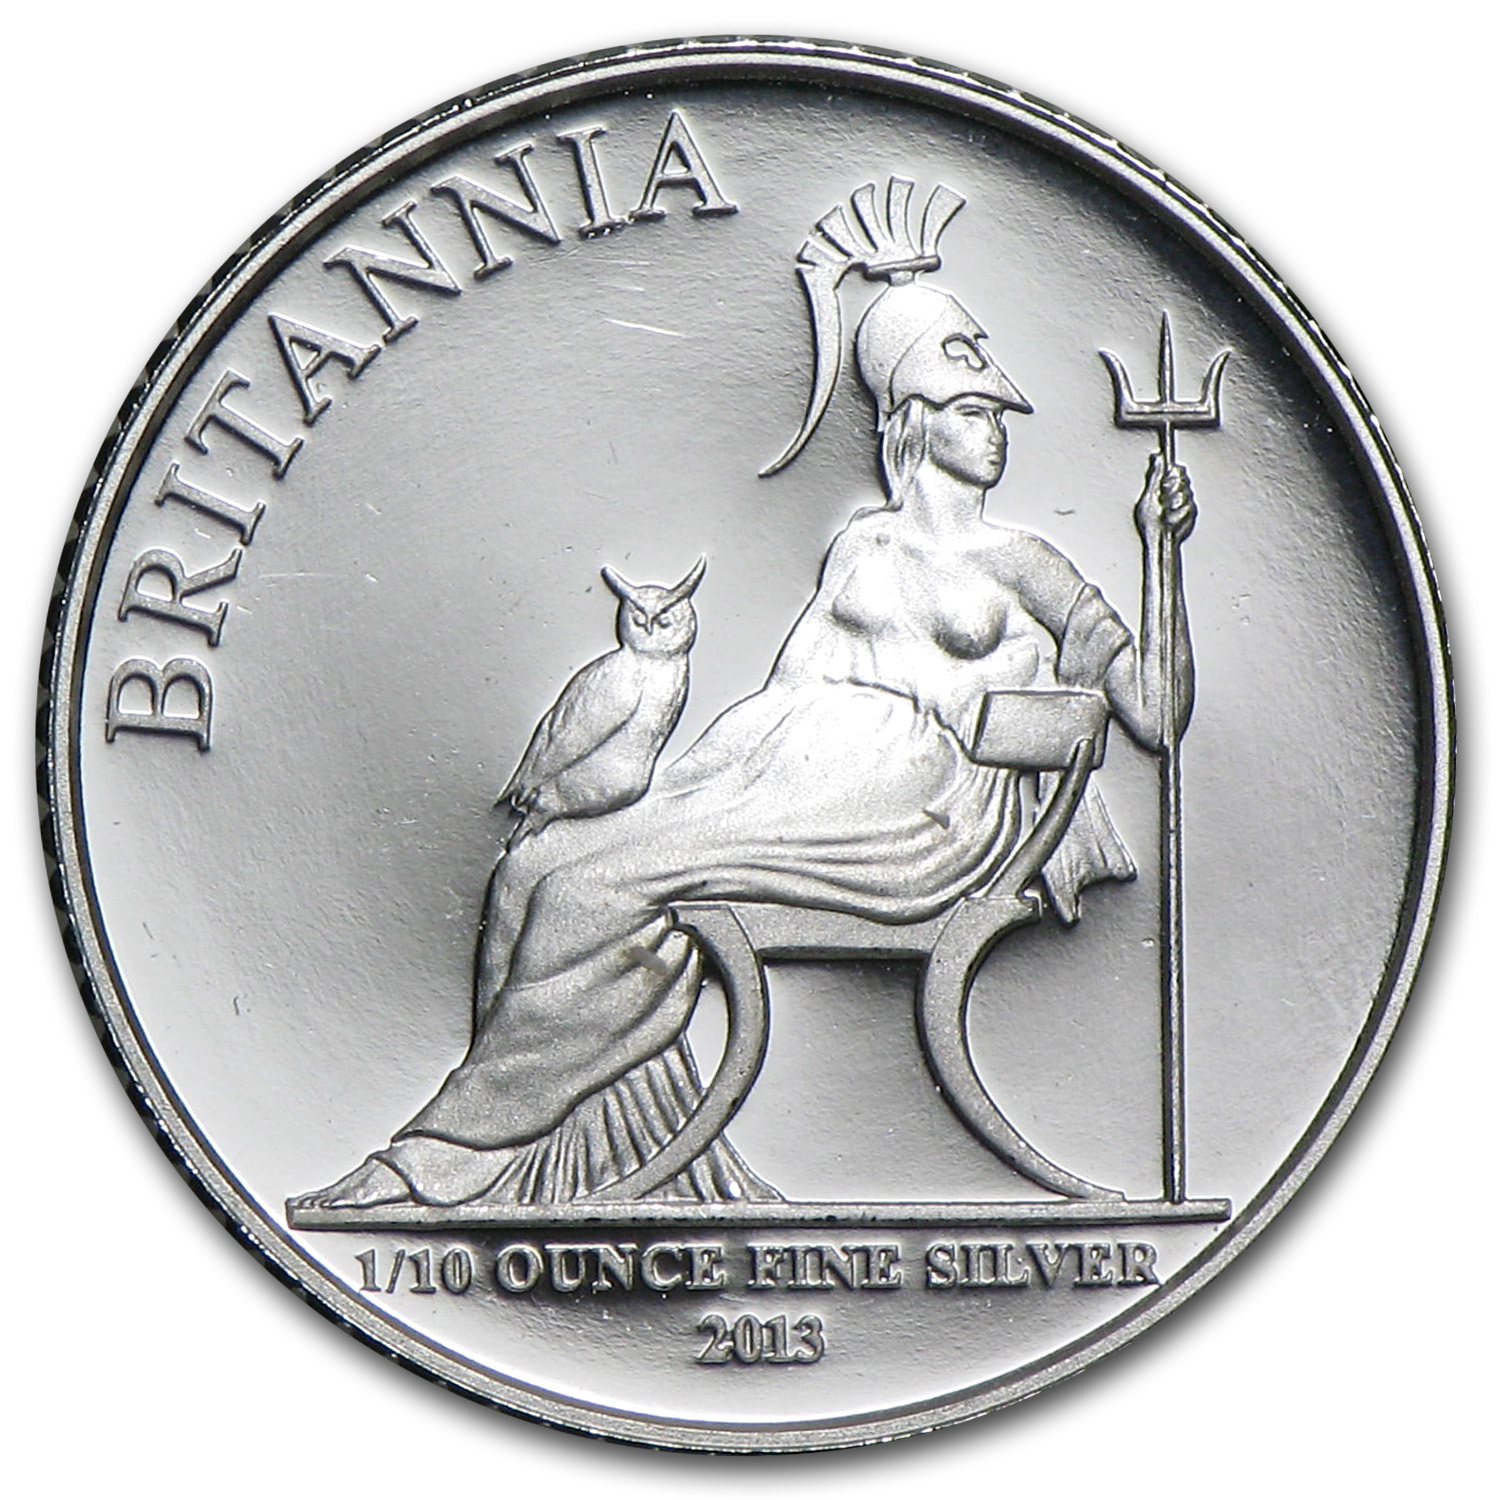 2013 Great Britain 1/10 oz Silver Britannia Proof